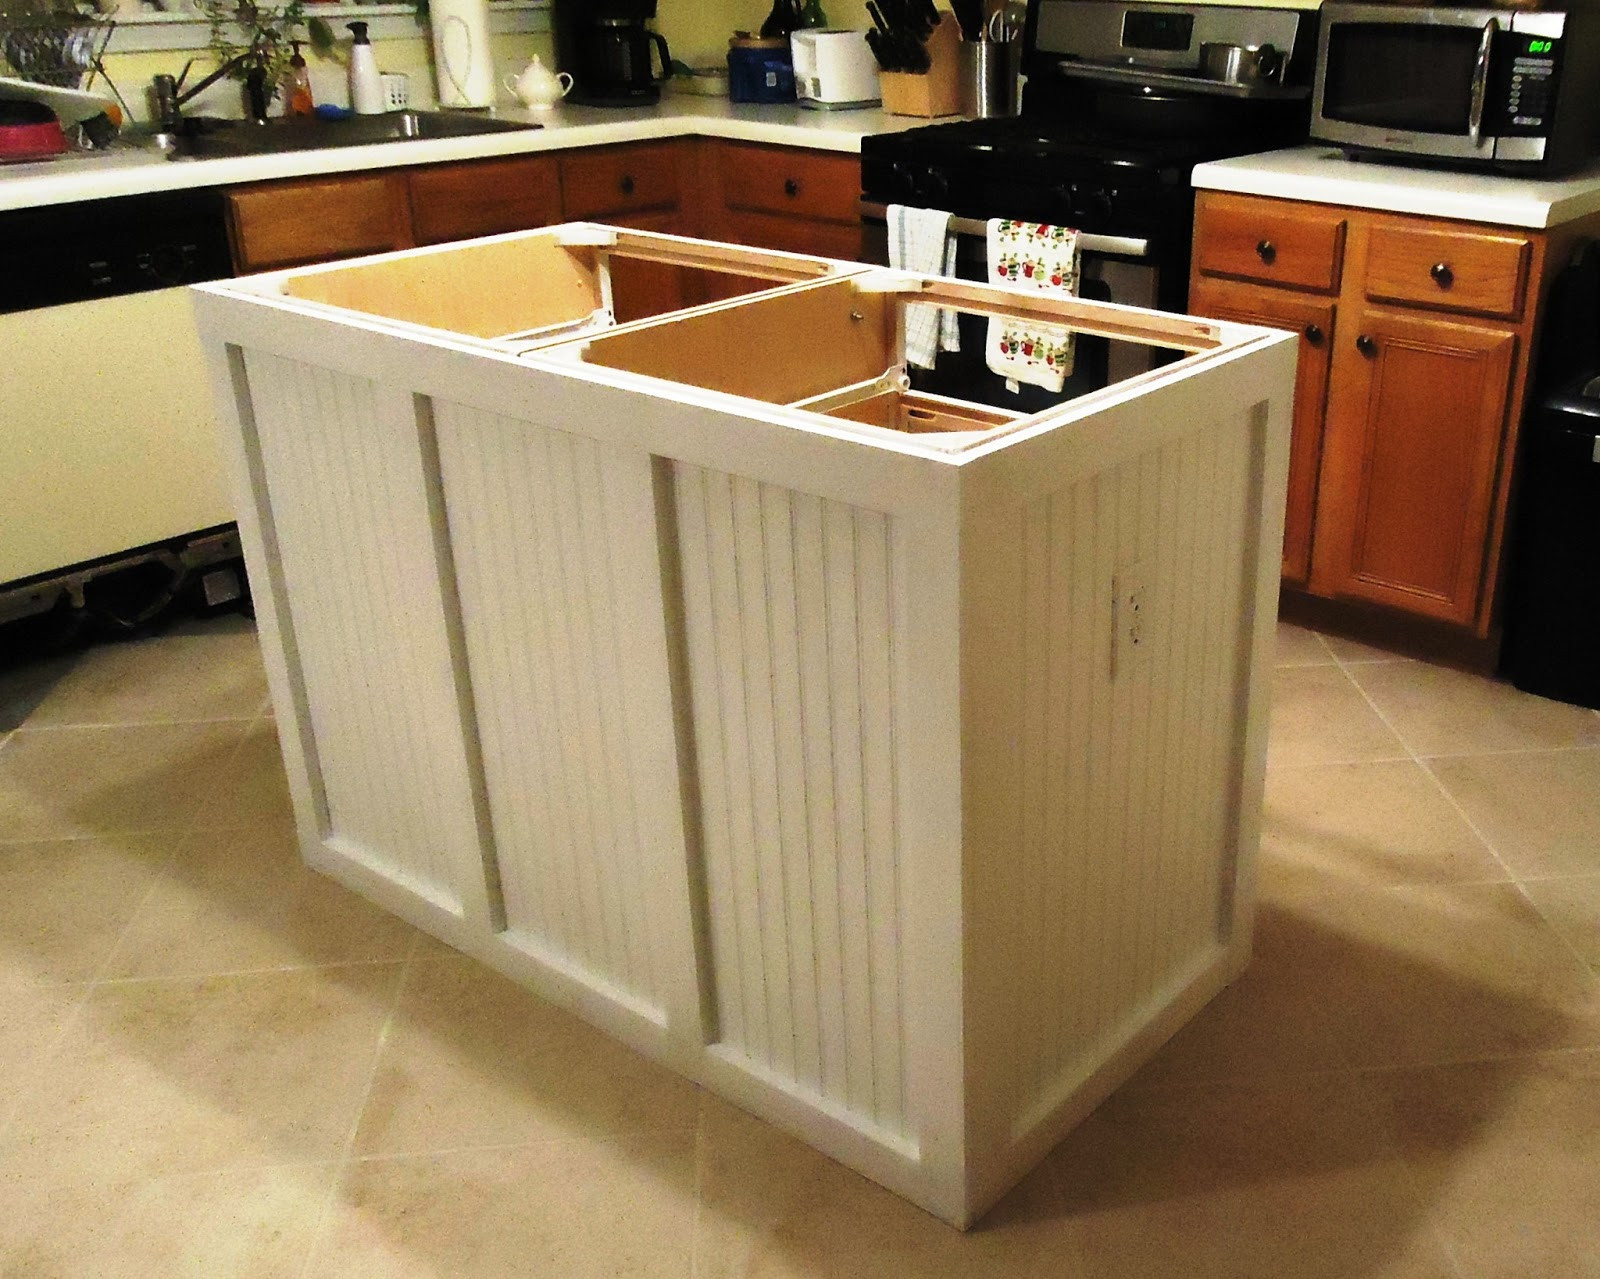 Best ideas about DIY Kitchen Islands Ideas . Save or Pin Walking to Retirement The DIY Kitchen Island Now.